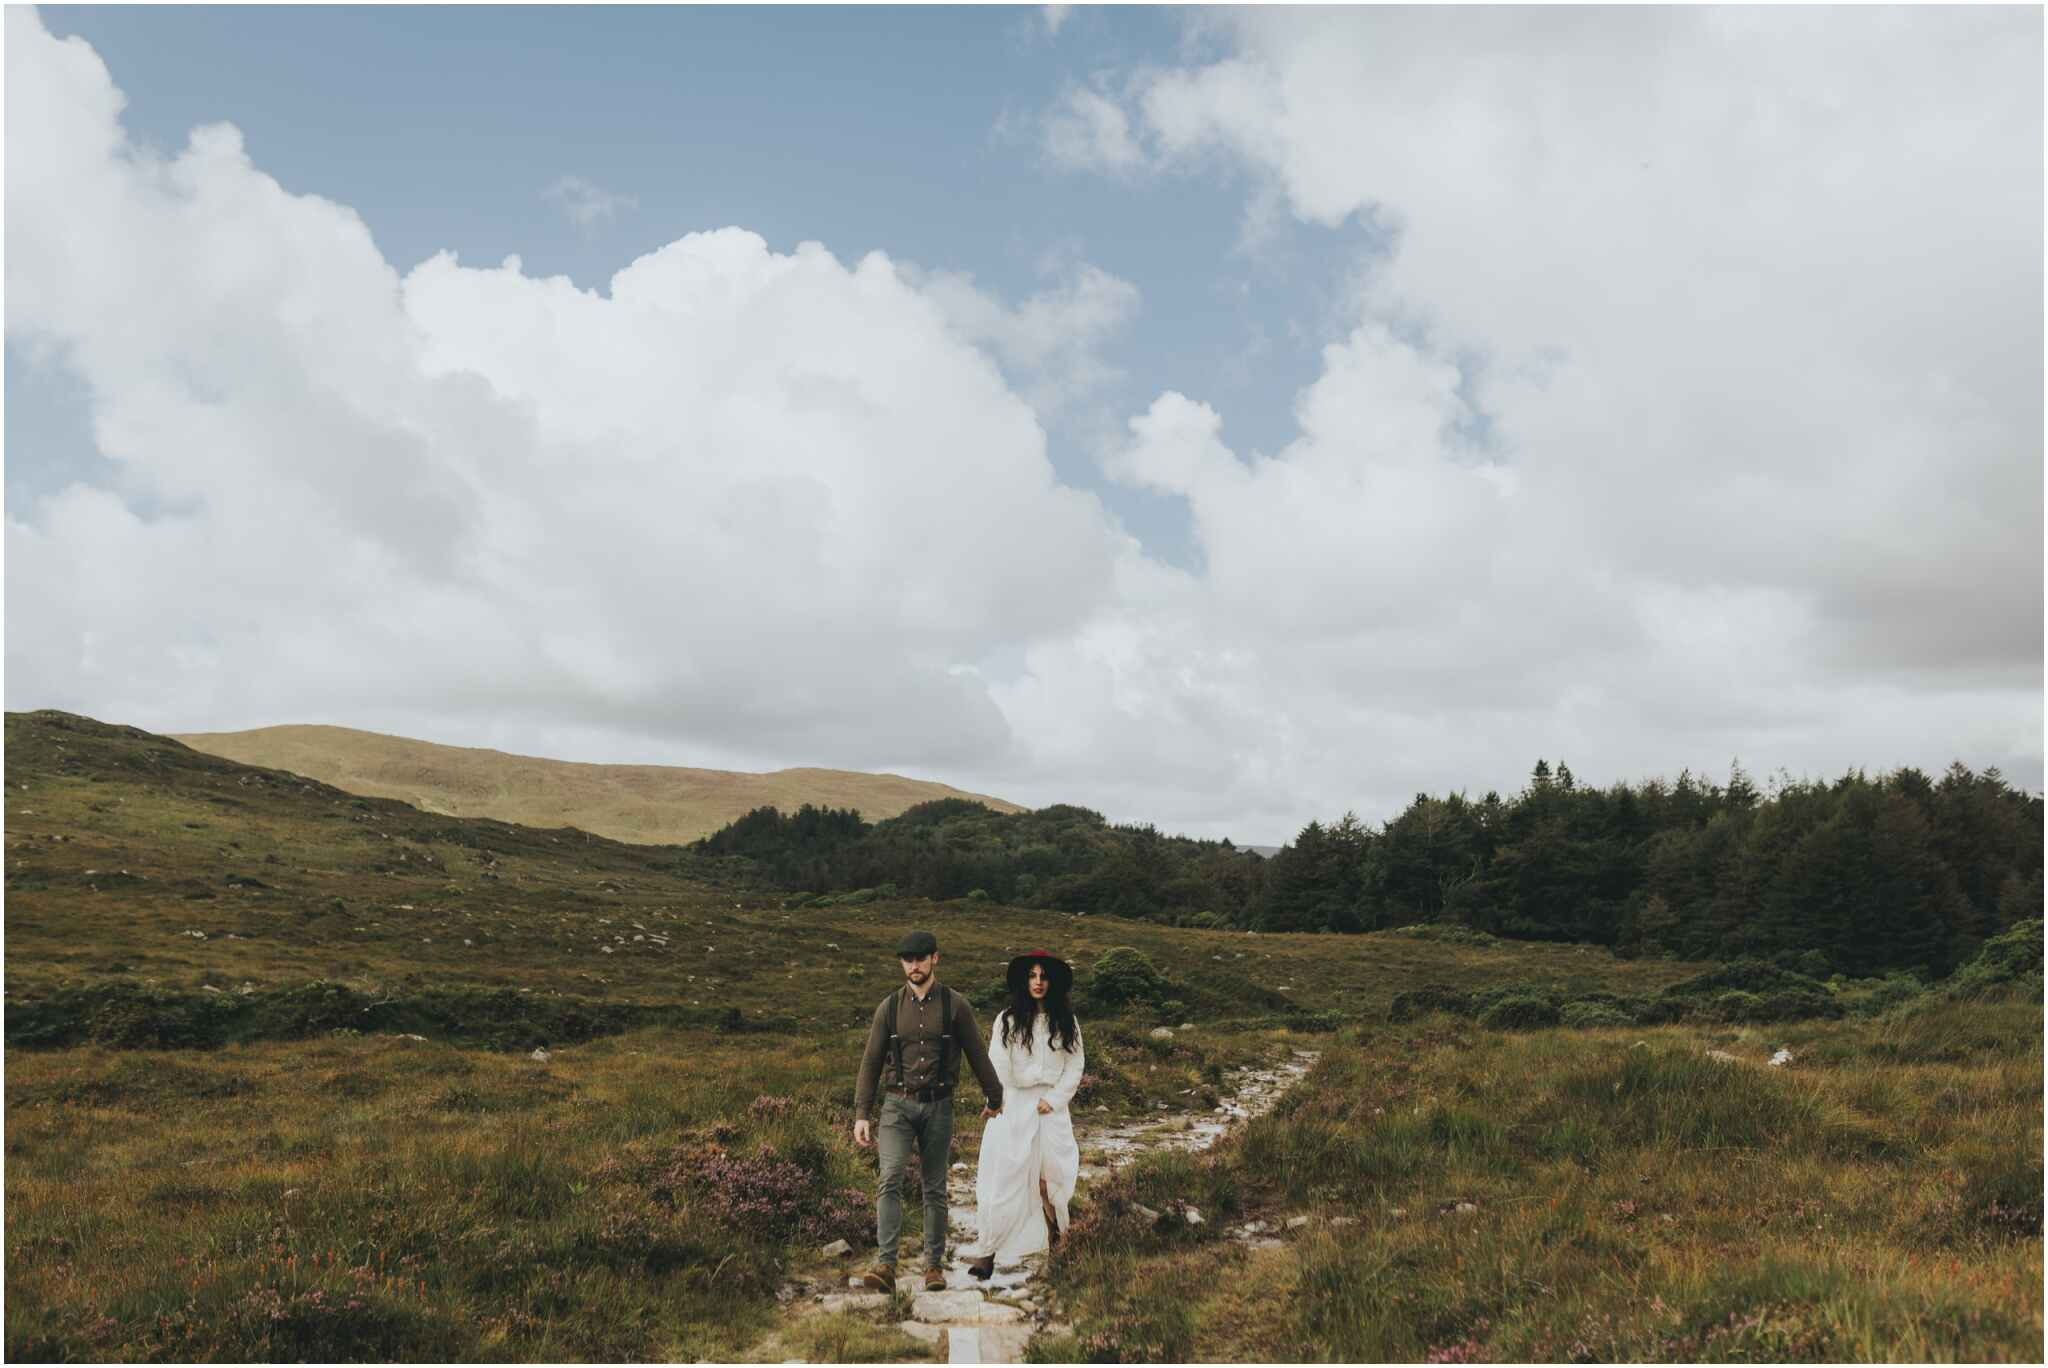 Rachel + David - Hiking Elopement in Muckish Mountain and Poisoned Glen, Donegal 28